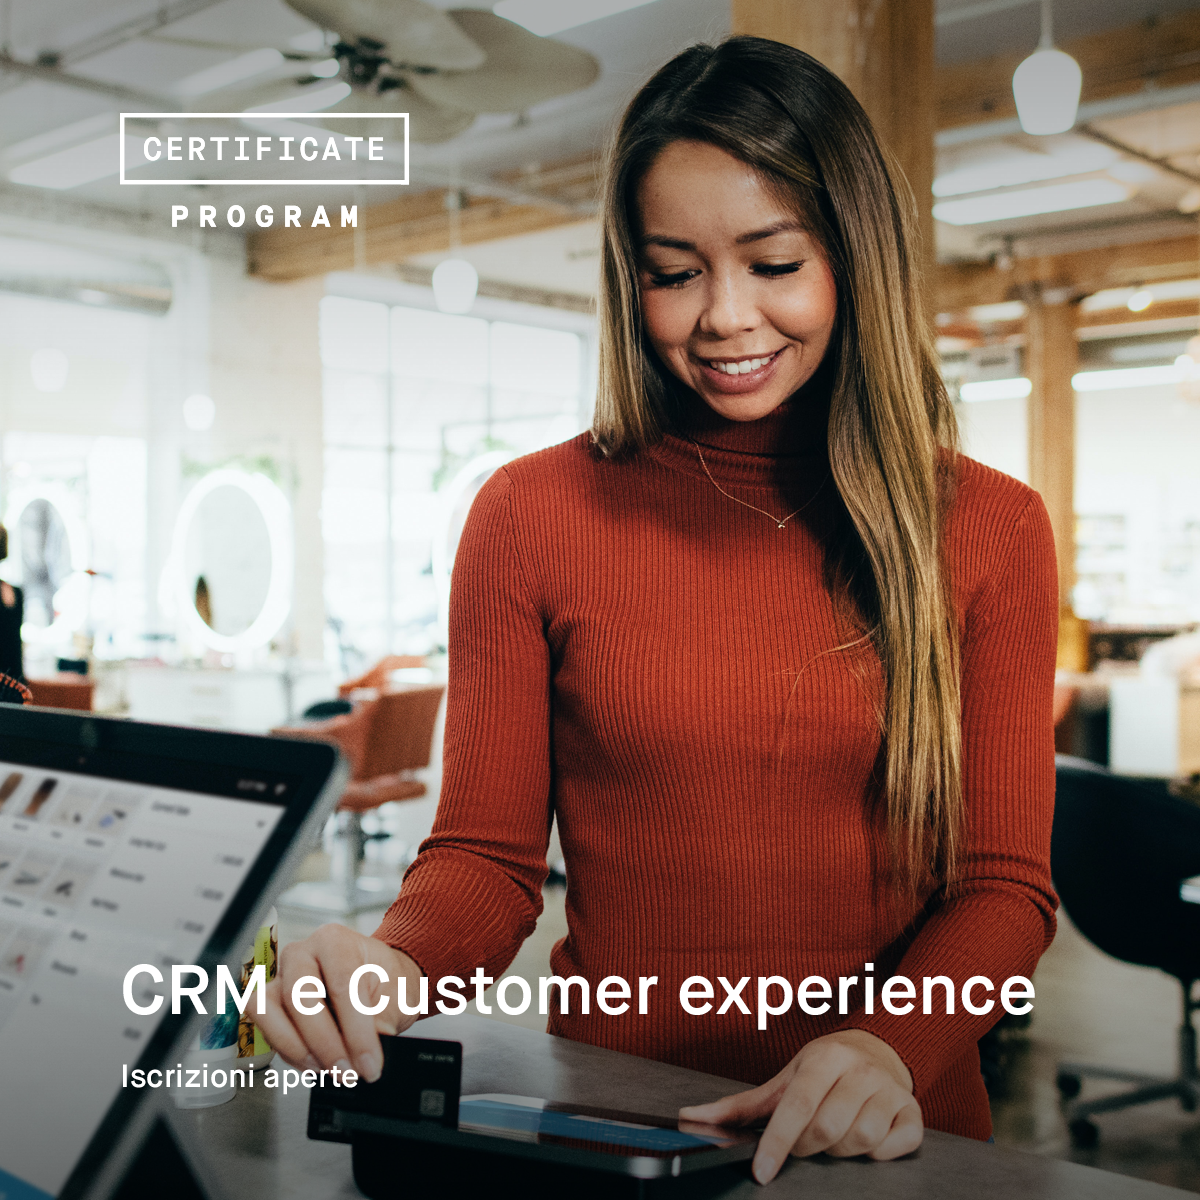 CRM & Customer Experience